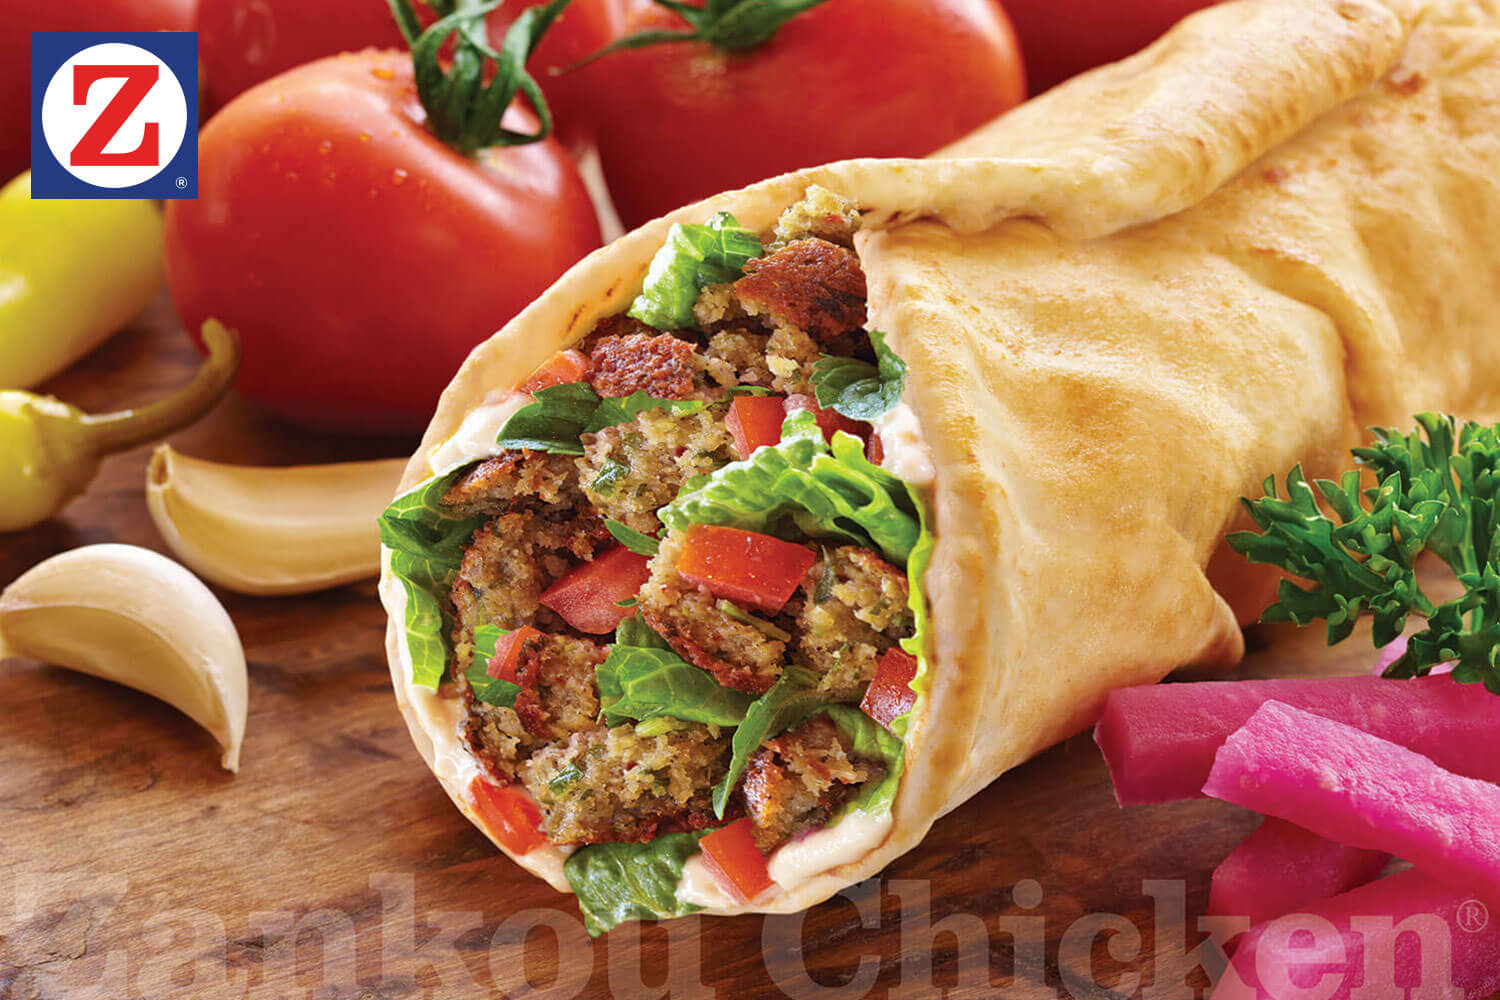 Falafel wrap close-up